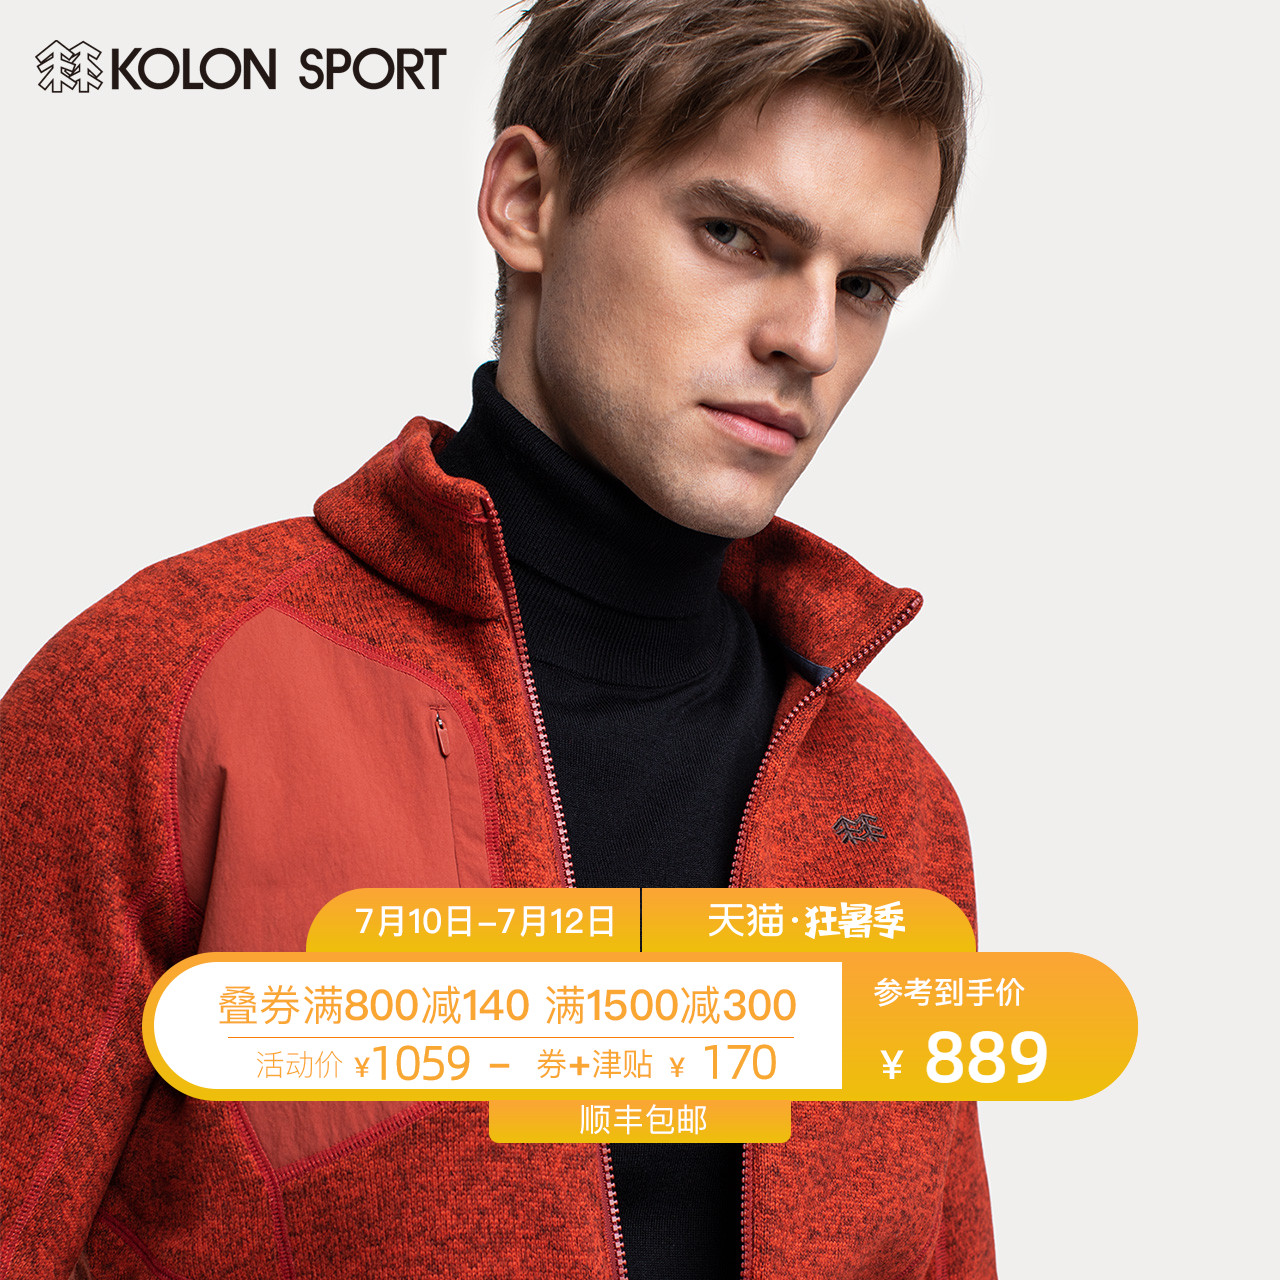 KOLONSPORT Canlong Men's POLARTEC Grab Velvet Jacket Grab Velvet Jacket Man Korean Outdoor Sports Tide